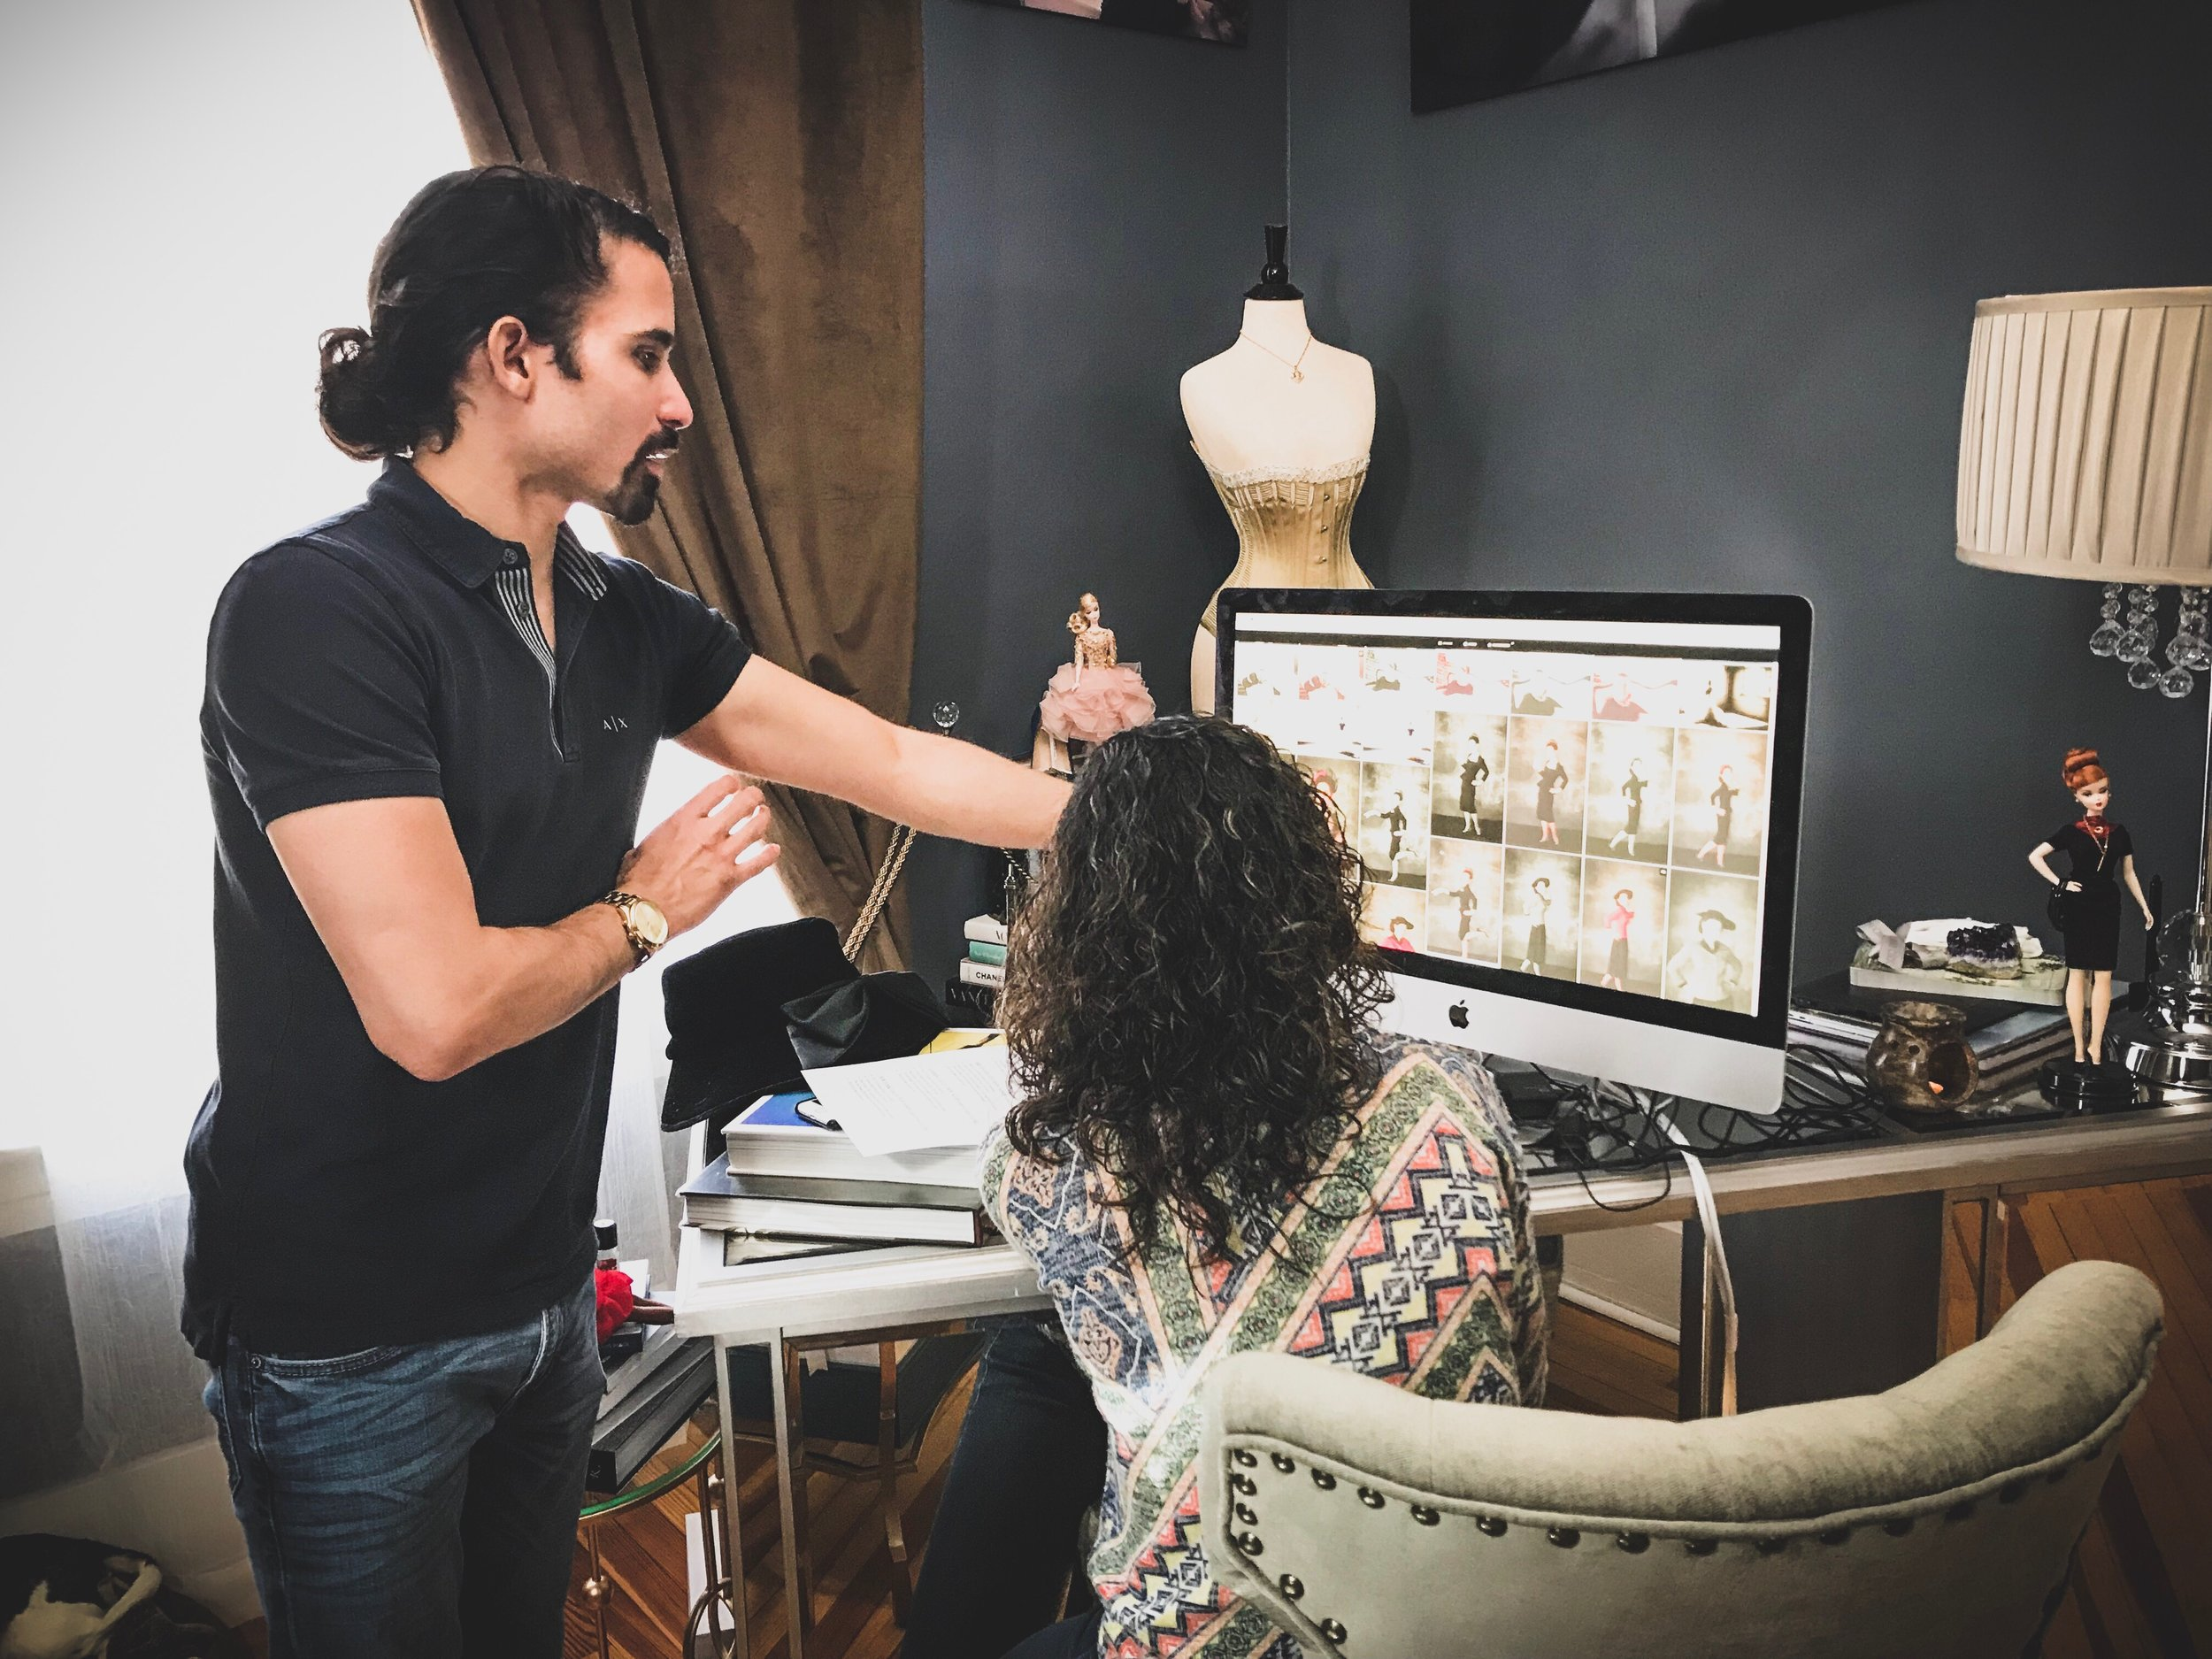 Guiding a portrait client during her viewing/ordering session. Image courtesy of Molly McCormick